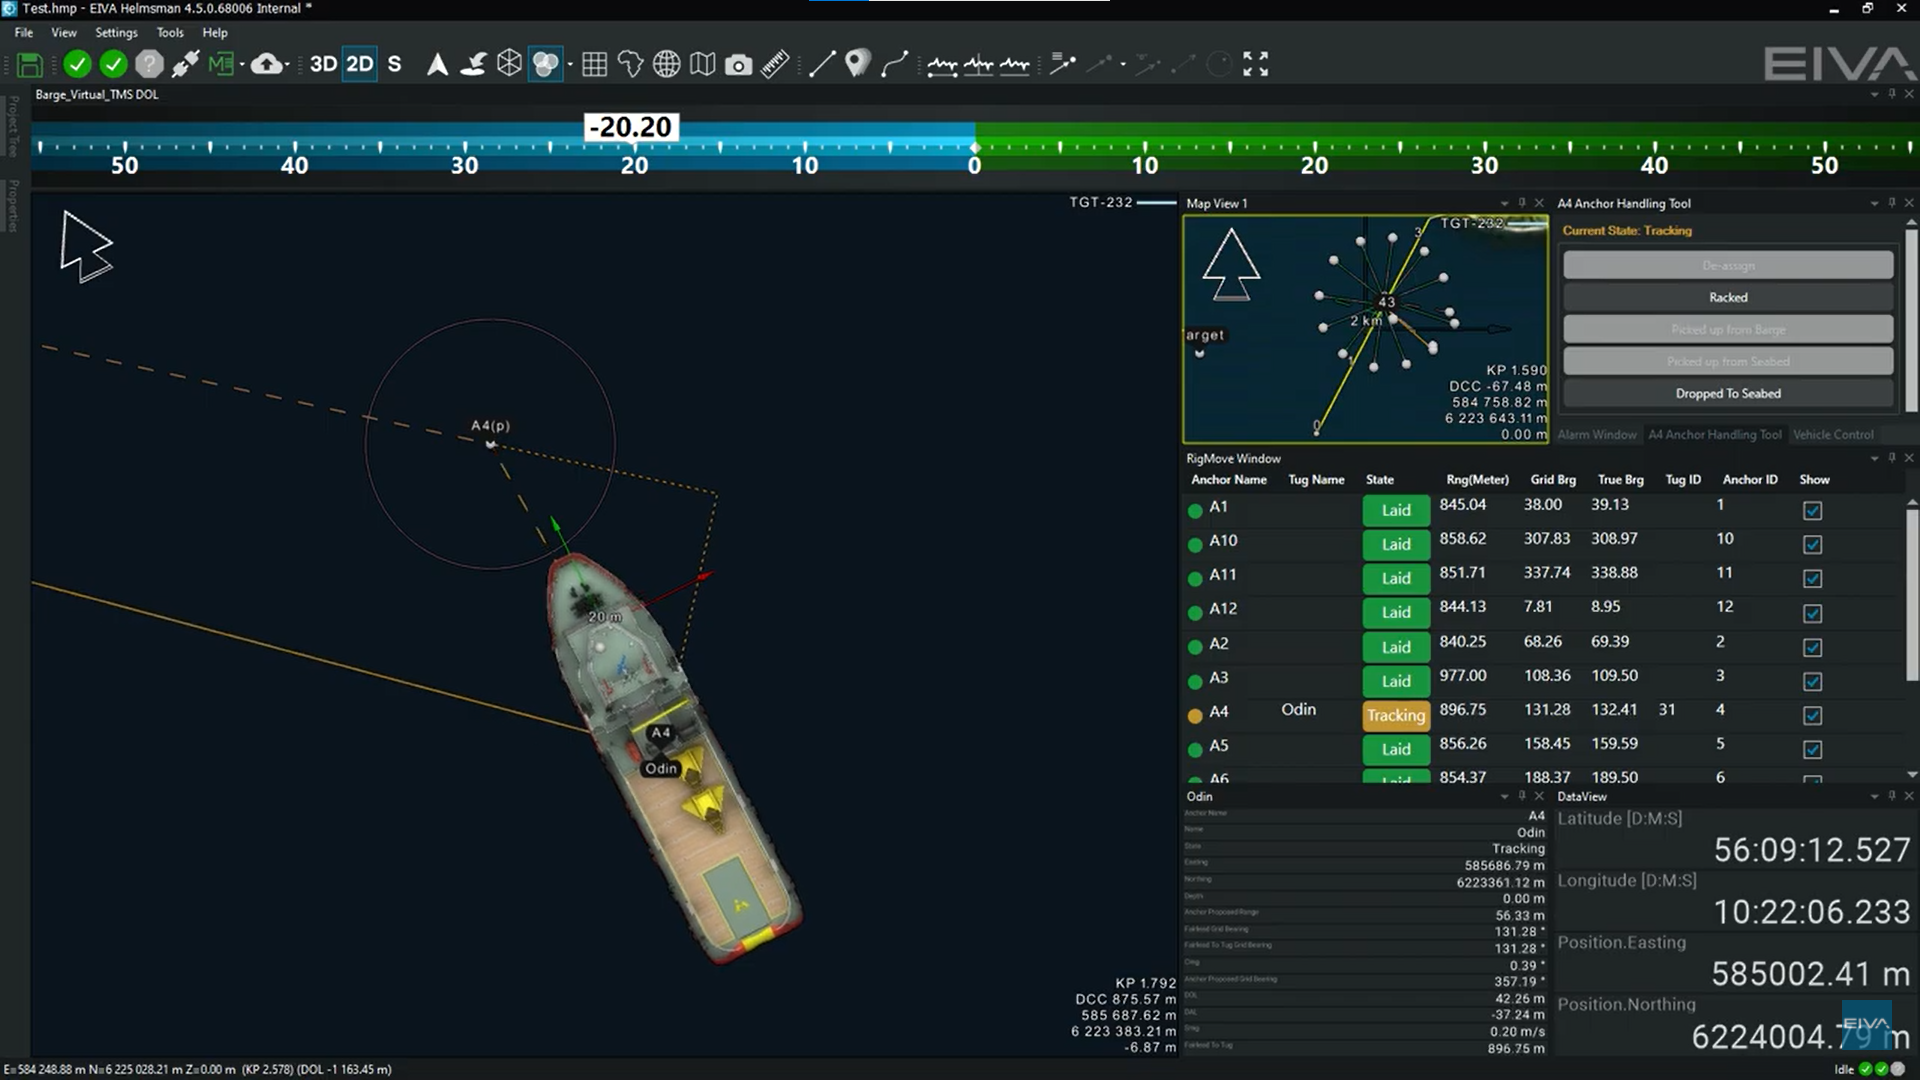 NaviPac 4.5 is the latest update to our positioning and navigation software, with new features such as rig move and tug management